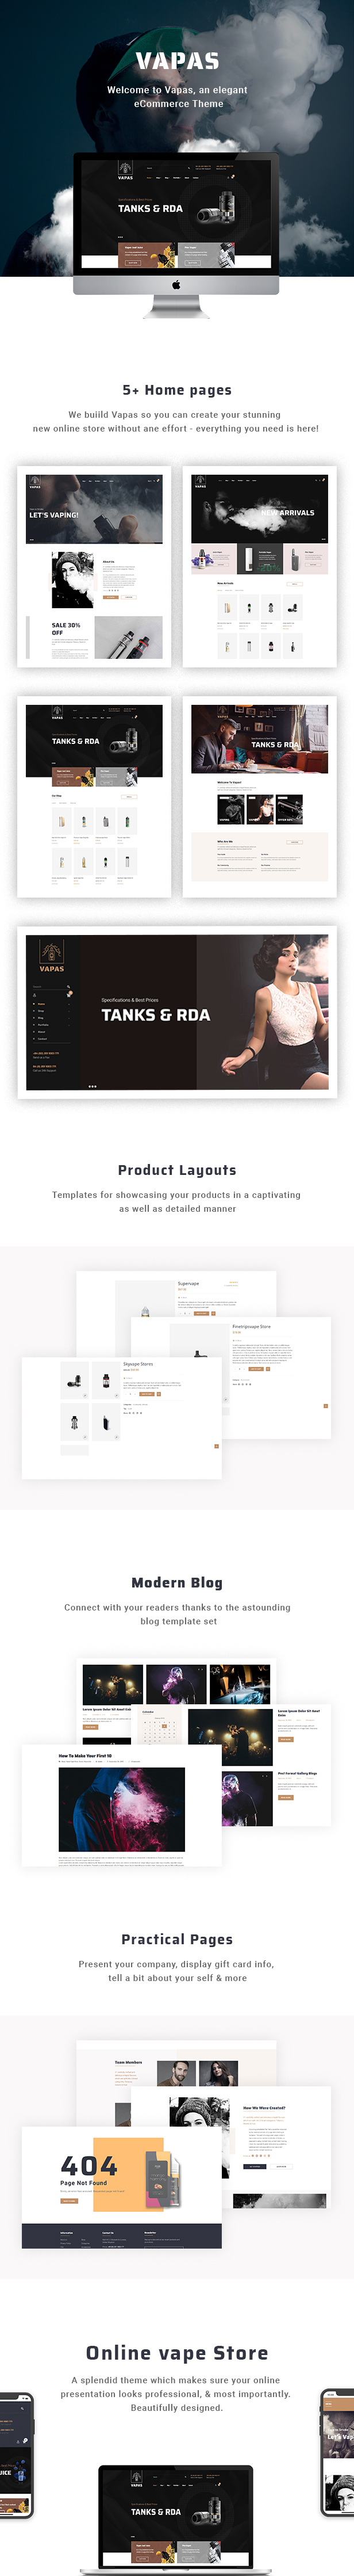 Vapas - Vape Store WooCommerce WordPress Theme - 1